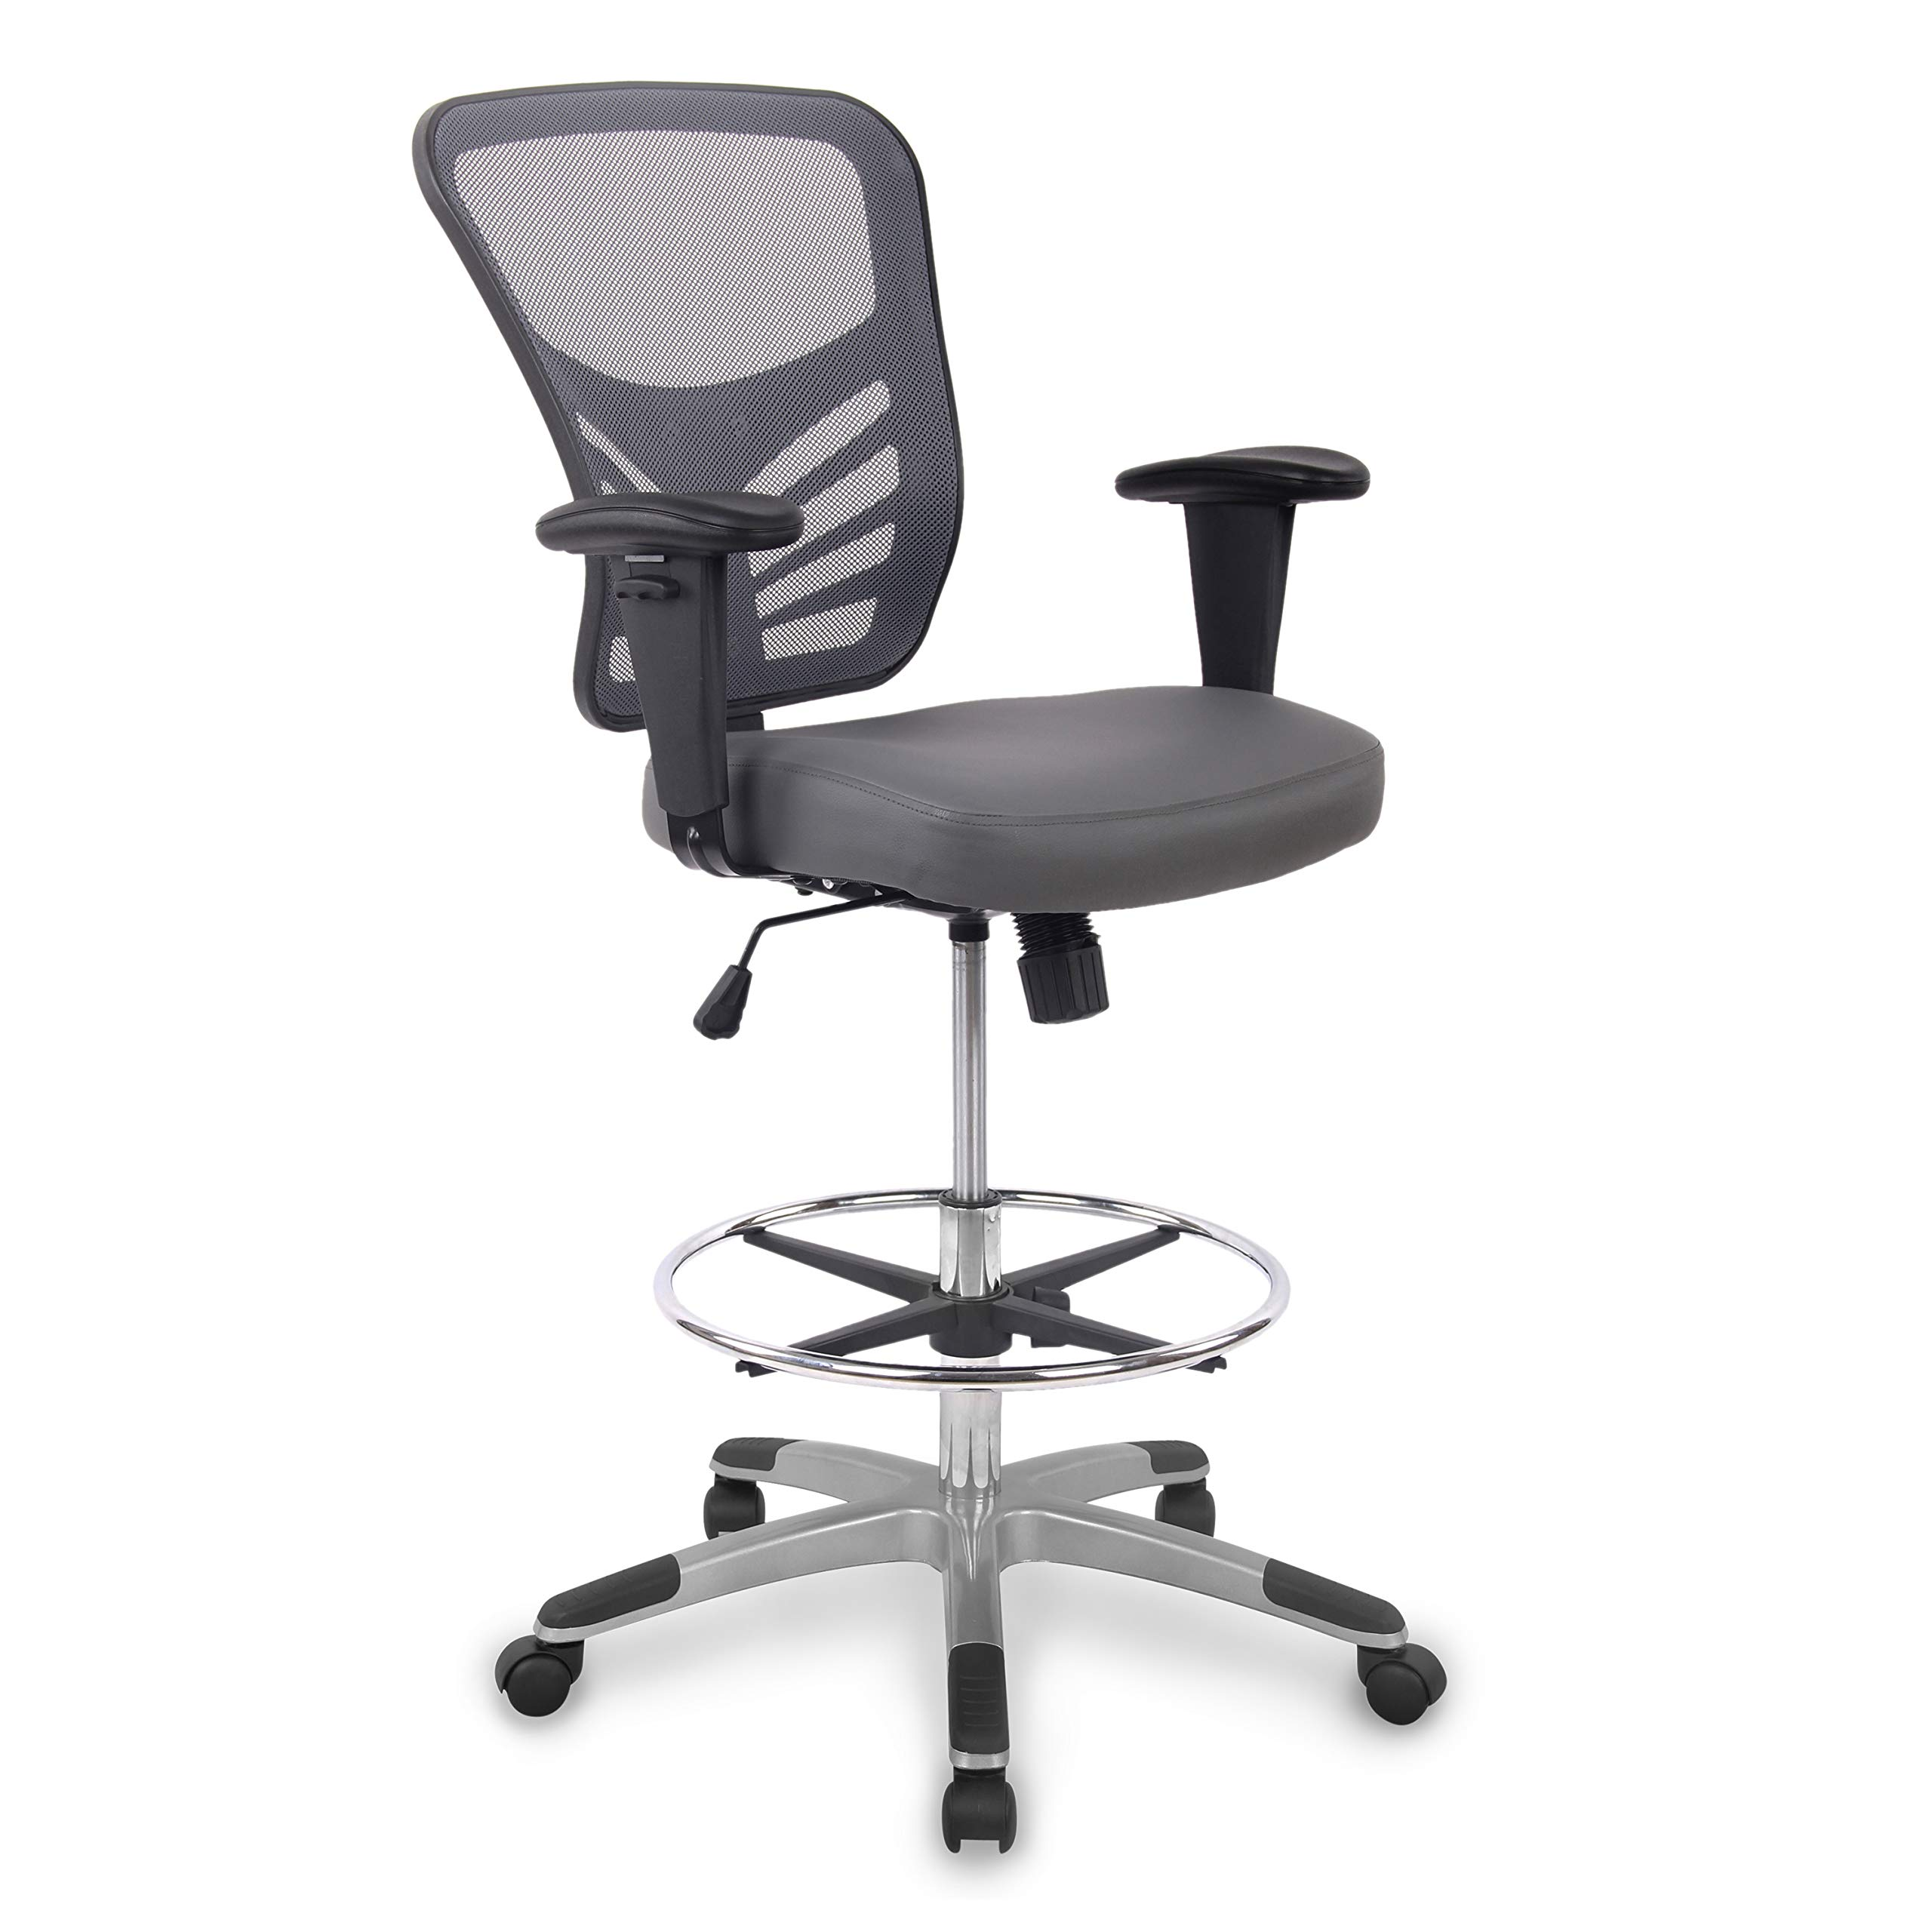 Poly and Bark Brighton Drafting Chair with Vegan Leather Seat in Gray